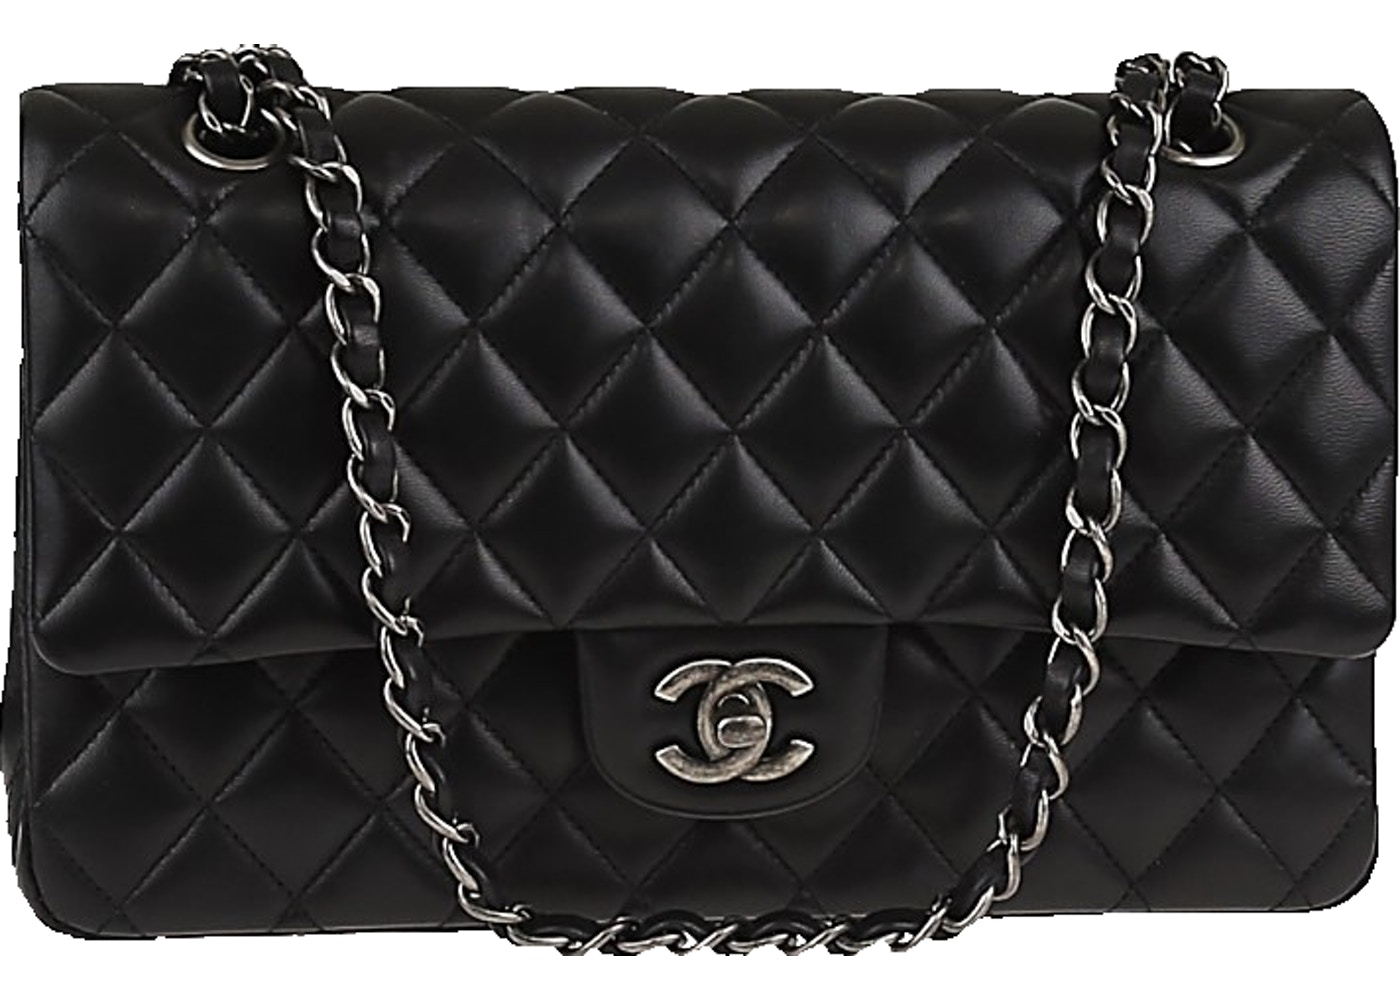 836ac8bff137d0 Chanel Classic Double Flap Quilted Medium Black